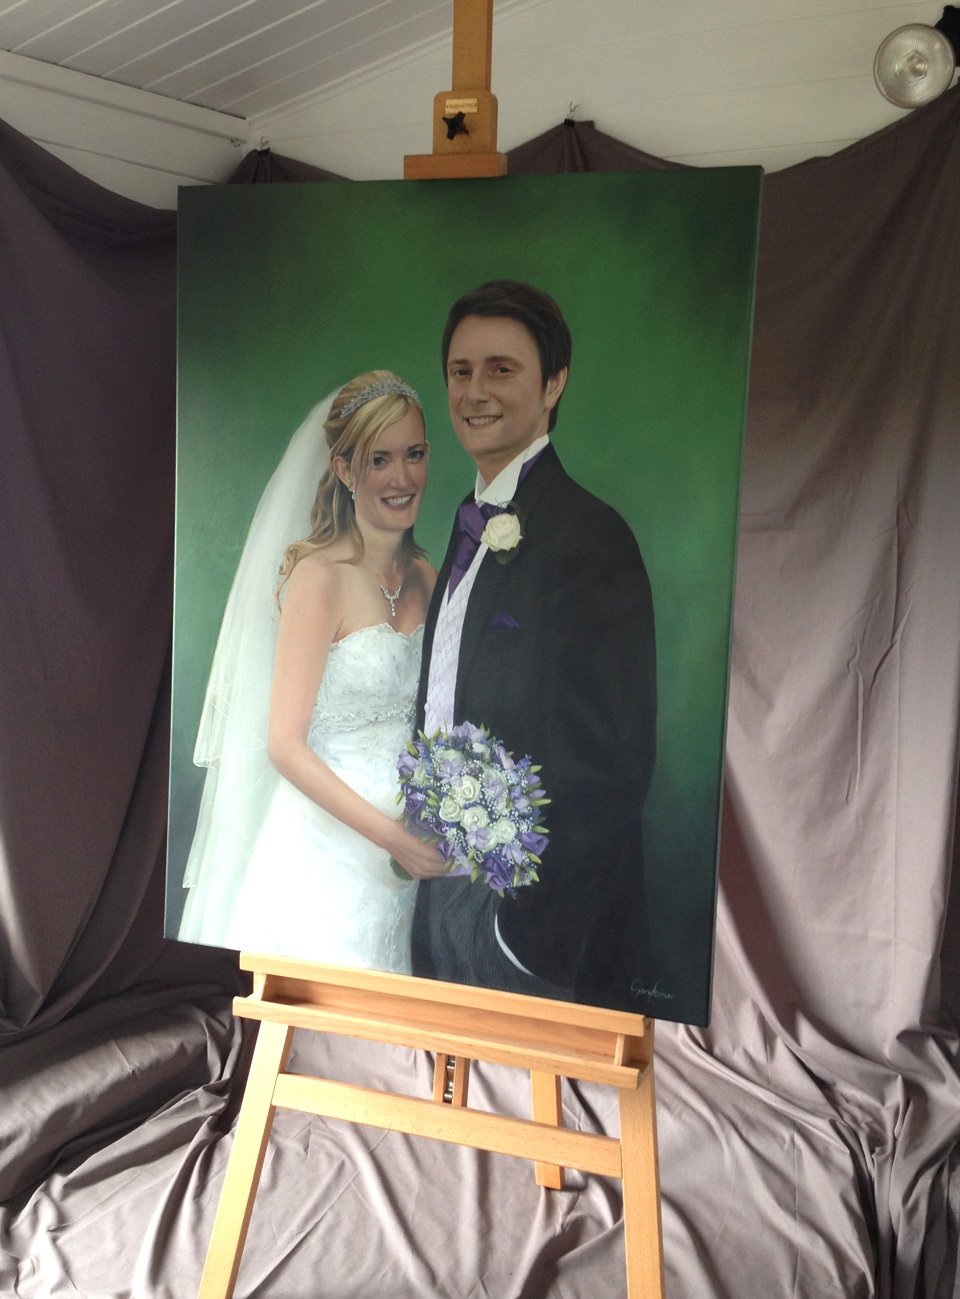 Finished wedding portrait painting on easel